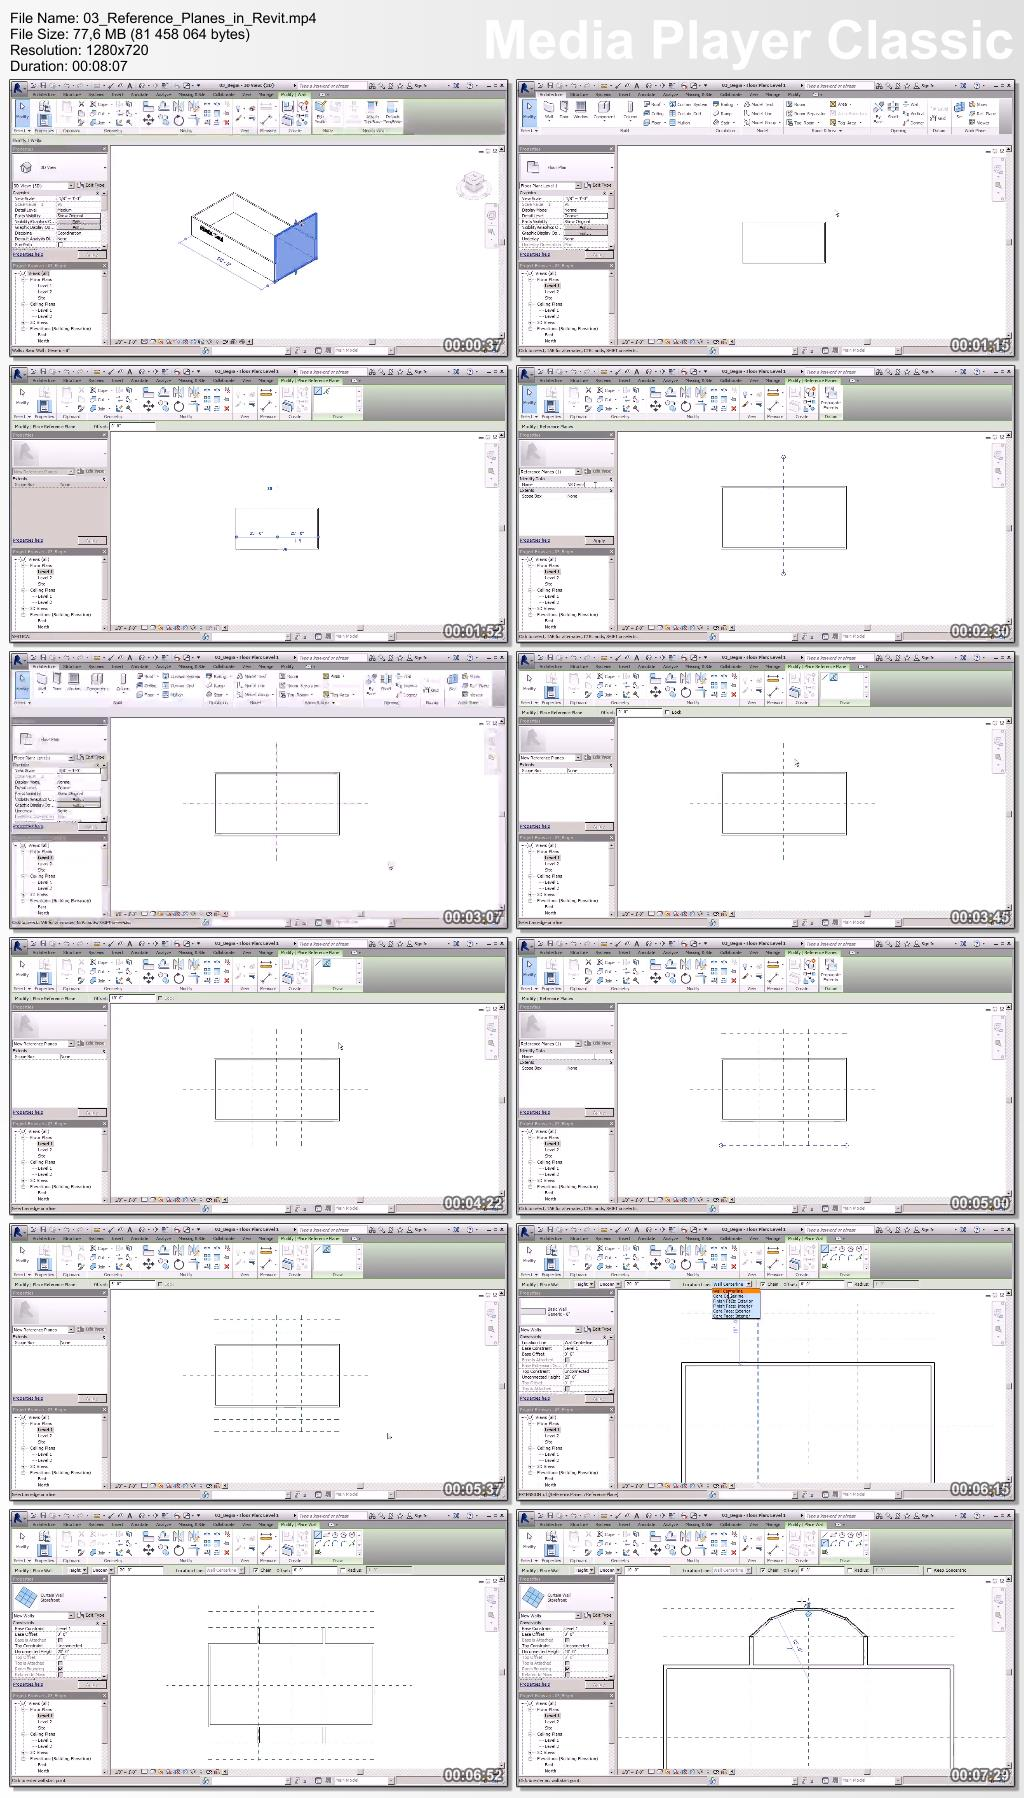 Dixxl Tuxxs - Work Planes and Reference Planes in Revit